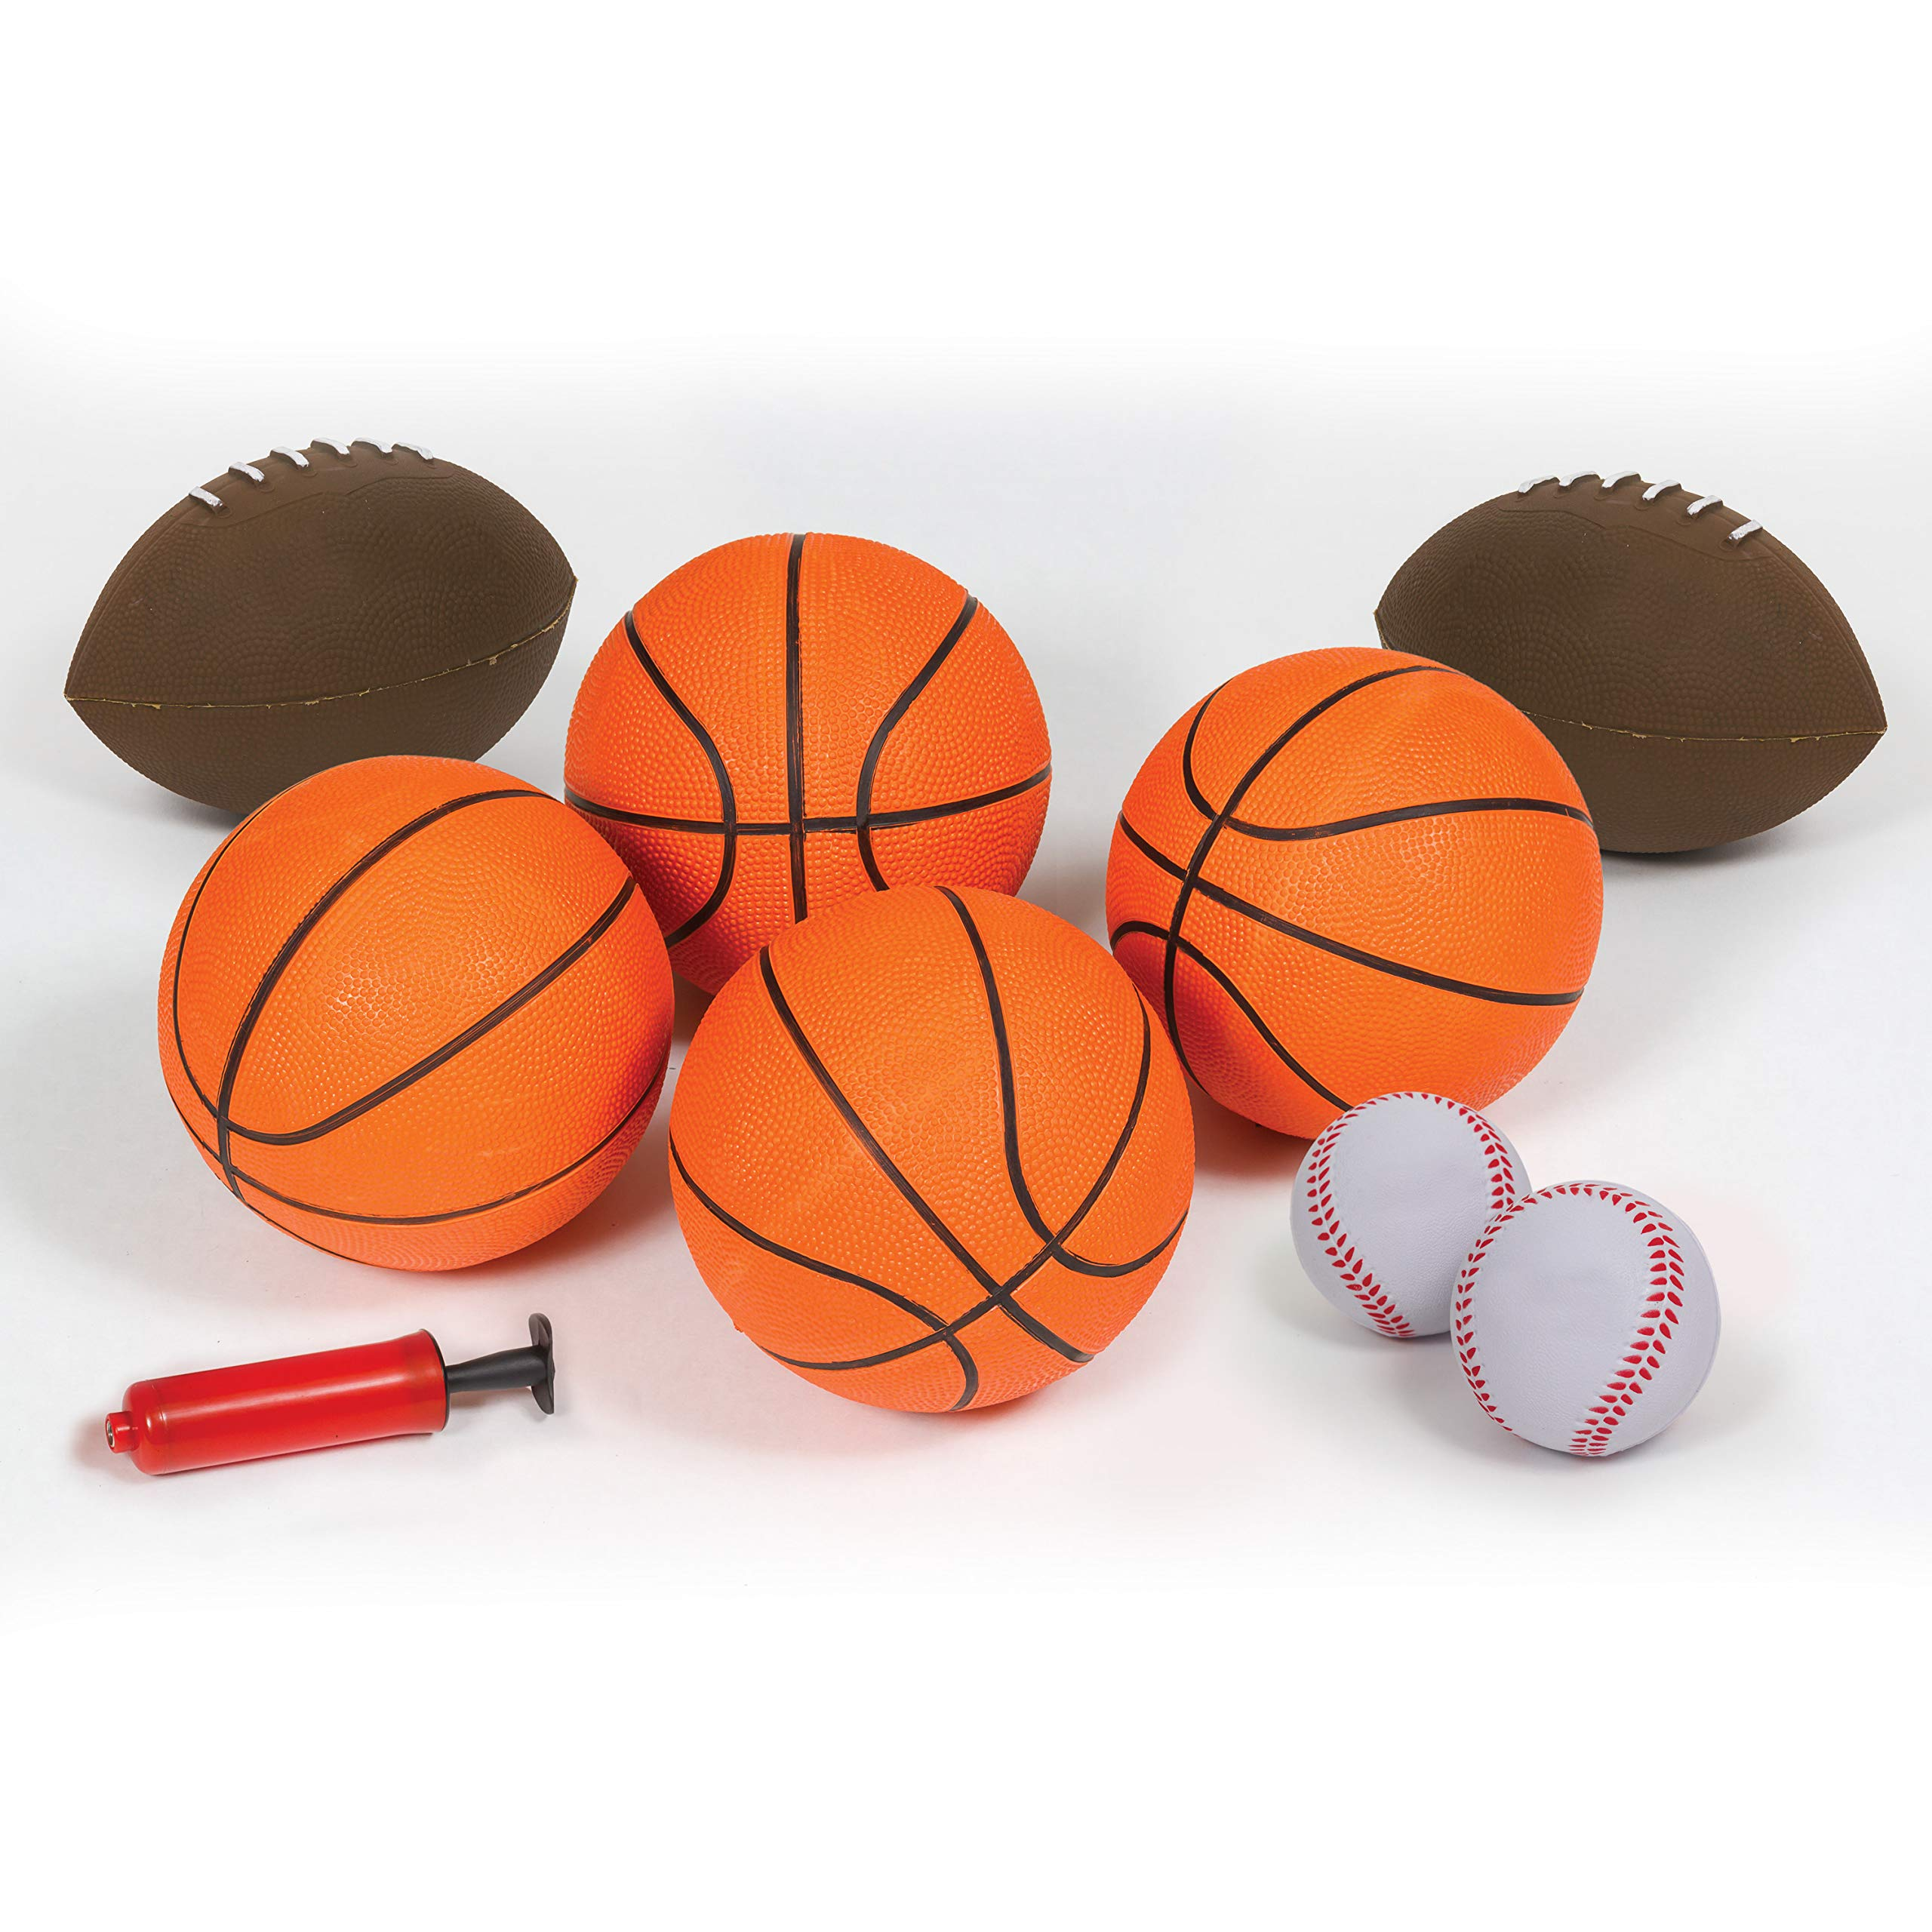 EastPoint Sports 3-in-1 Shoot, Pitch, Pass Sports Gaming Center Station for Kids by EastPoint Sports (Image #3)